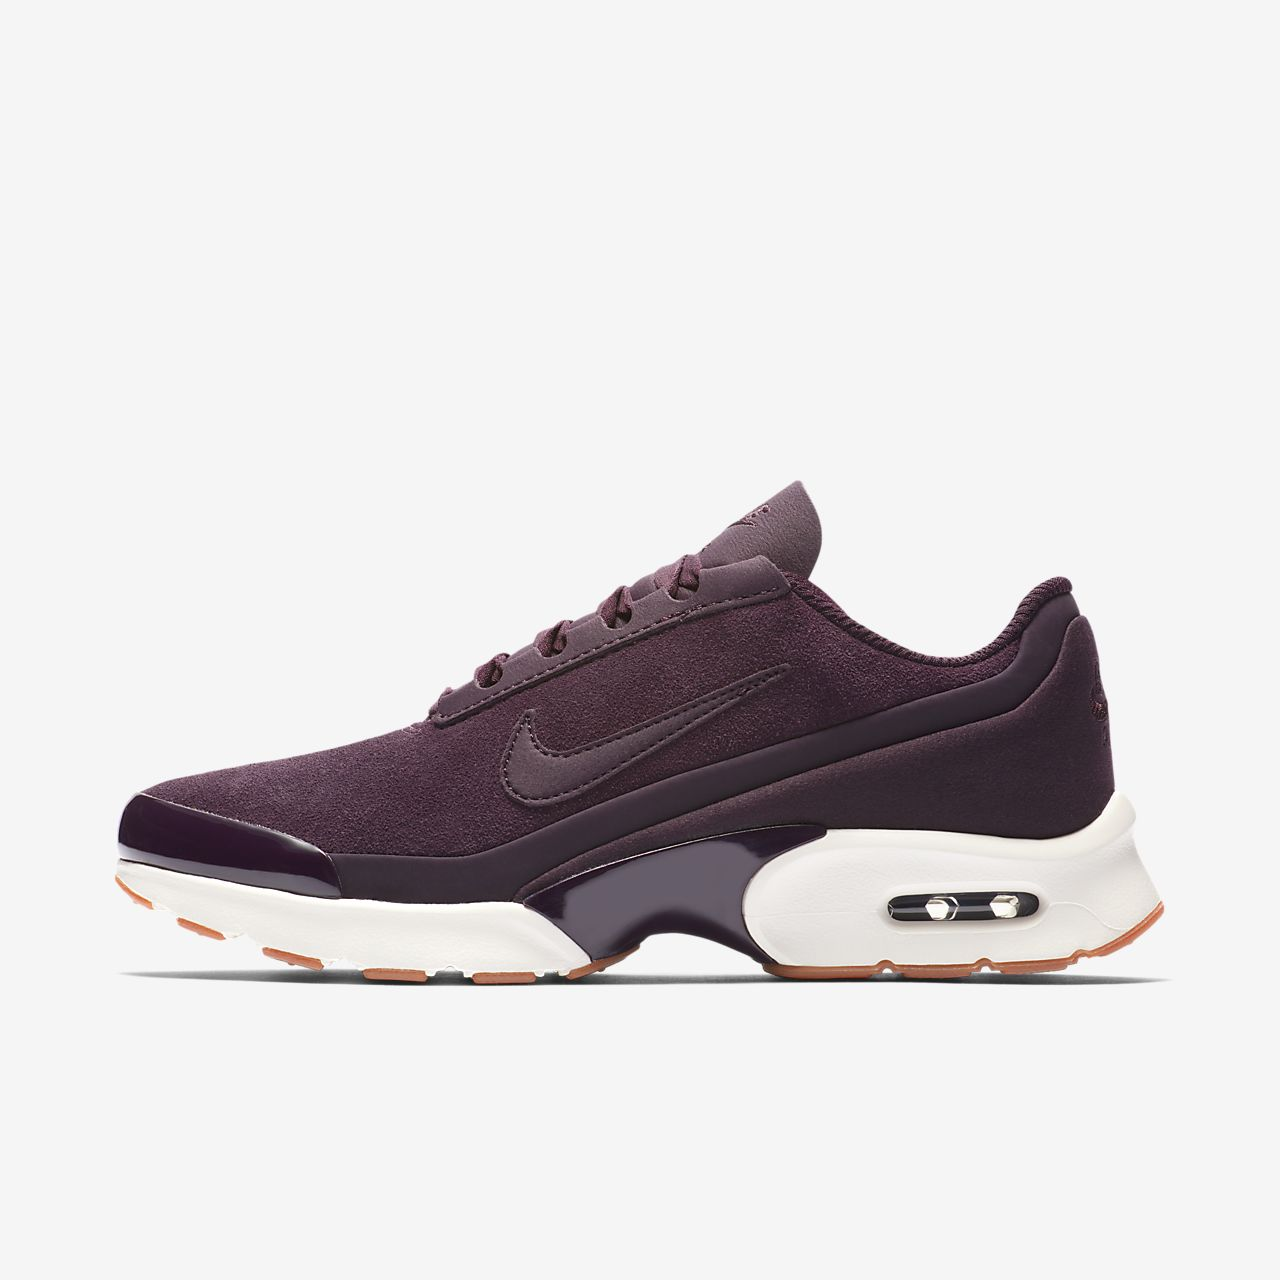 Chaussure Max Nike Air Max Chaussure Jewell SE pour BE 908a85